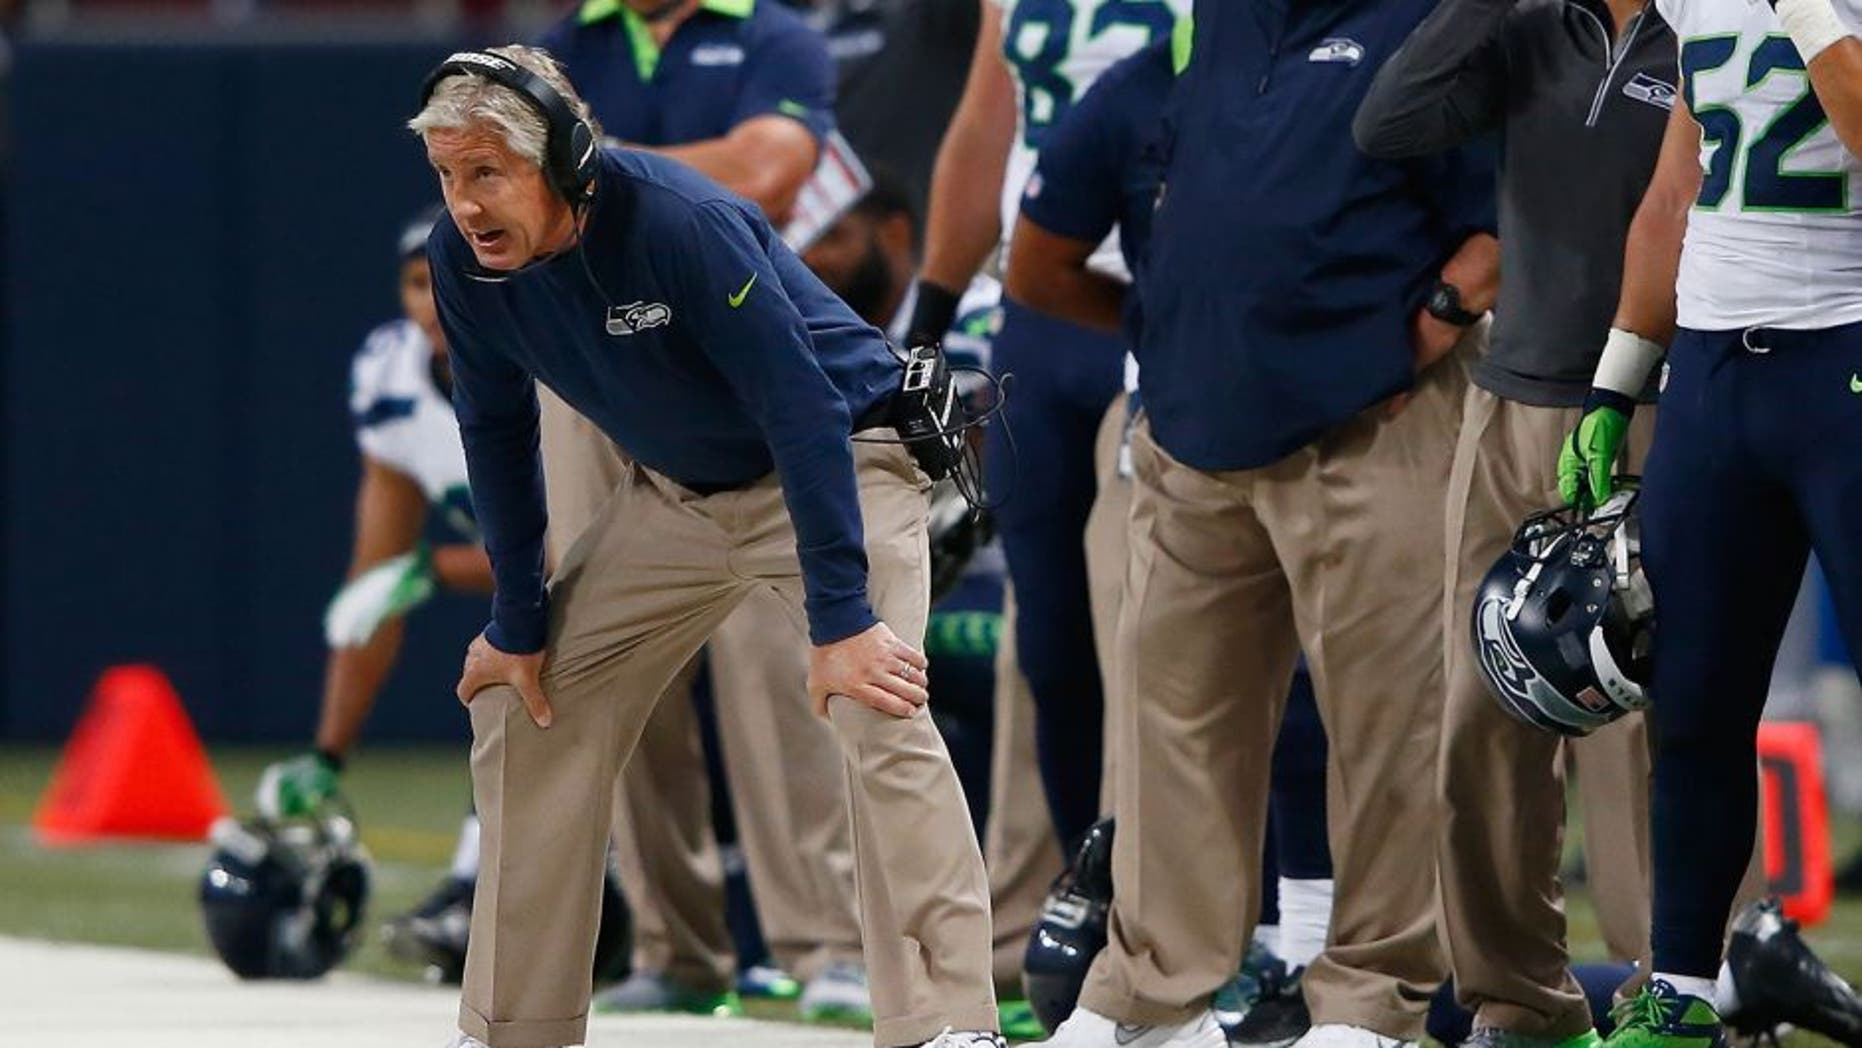 ST. LOUIS, MO - SEPTEMBER 13: Head Coach Pete Carroll of the Seattle Seahawks looks on during the first half against the St. Louis Rams at the Edward Jones Dome on September 13, 2015 in St. Louis, Missouri. (Photo by Jamie Squire/Getty Images)